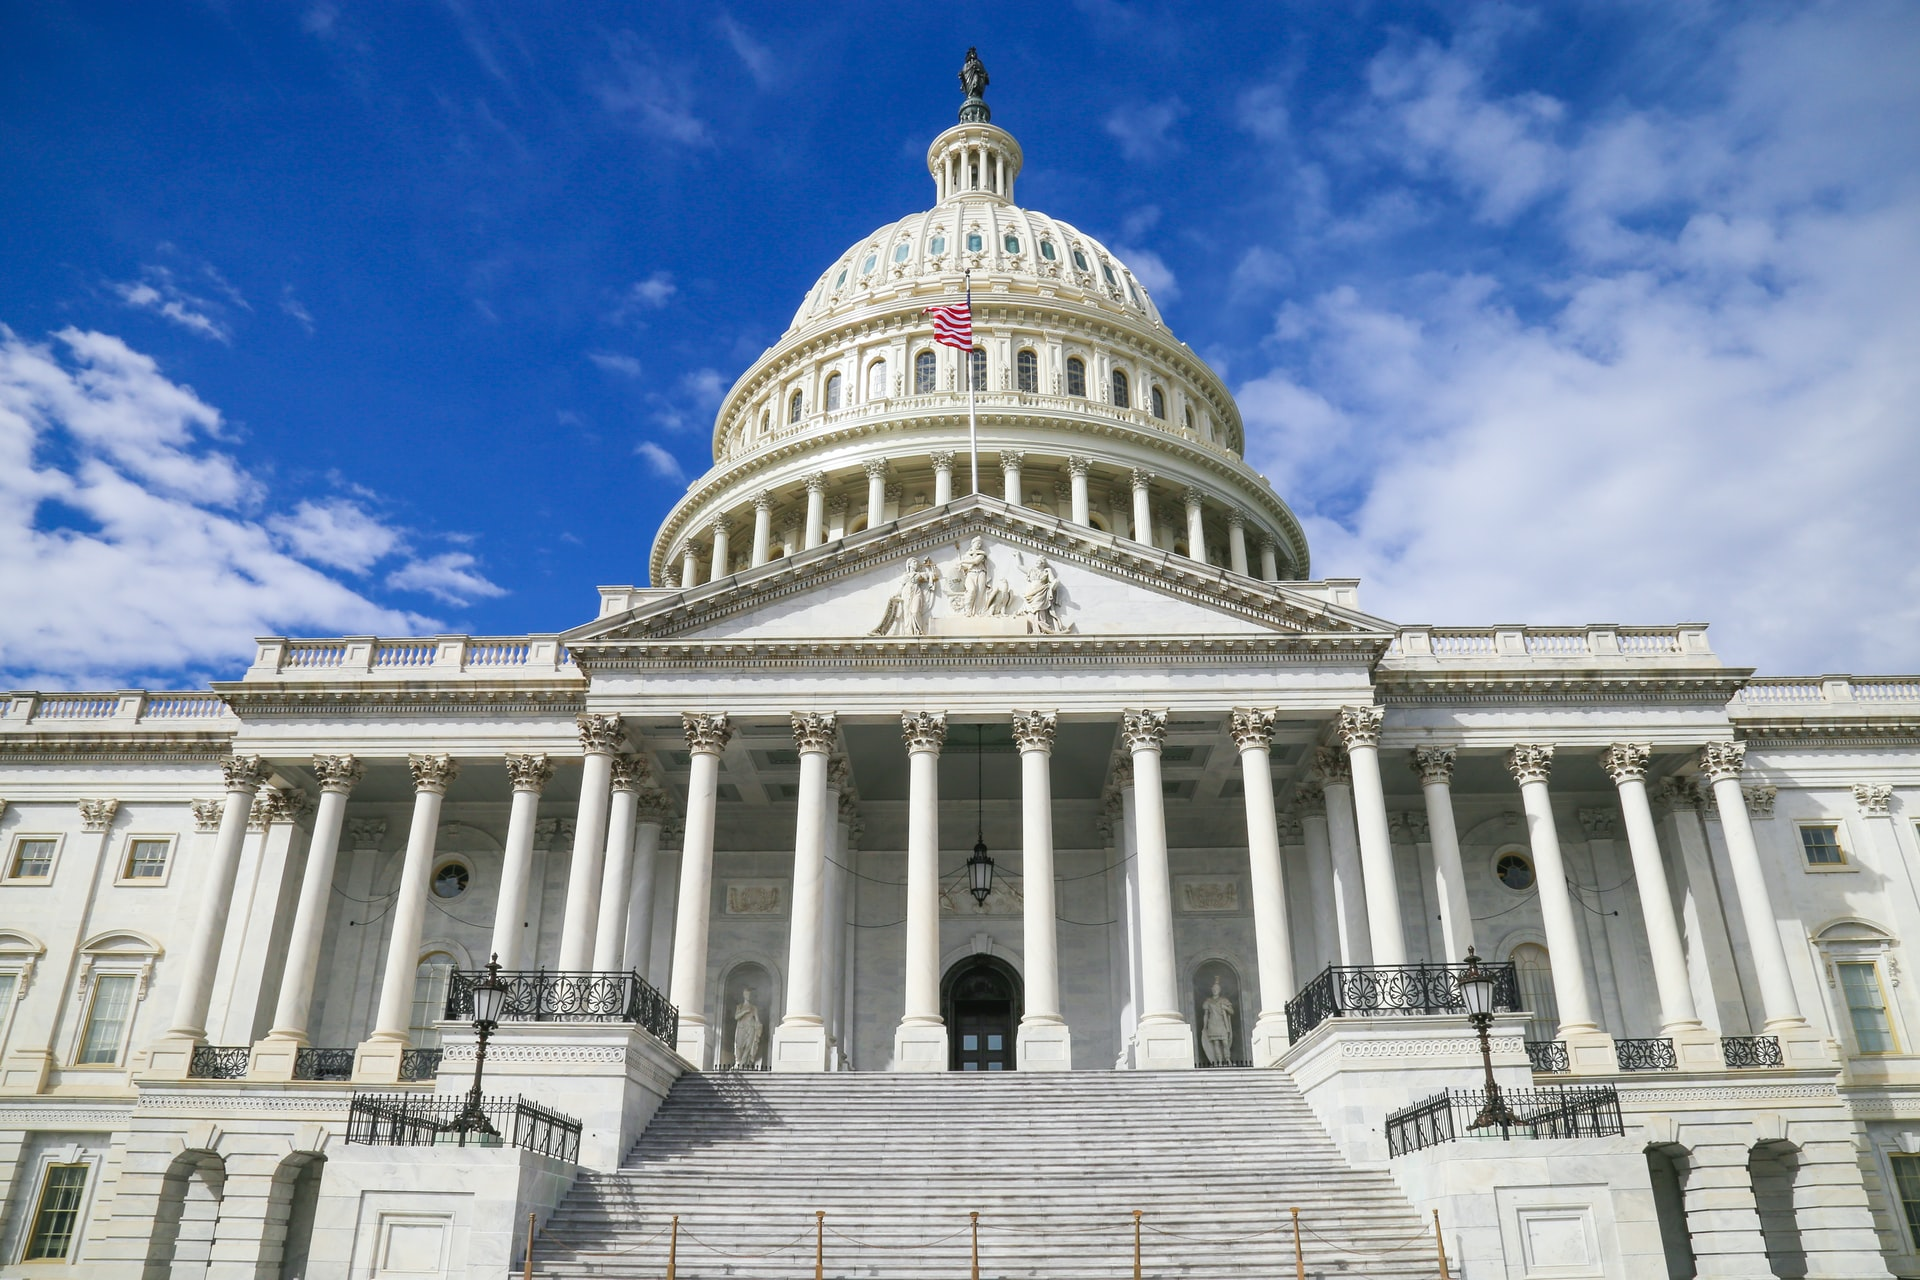 Photo of the US Capitol building in Washington, DC